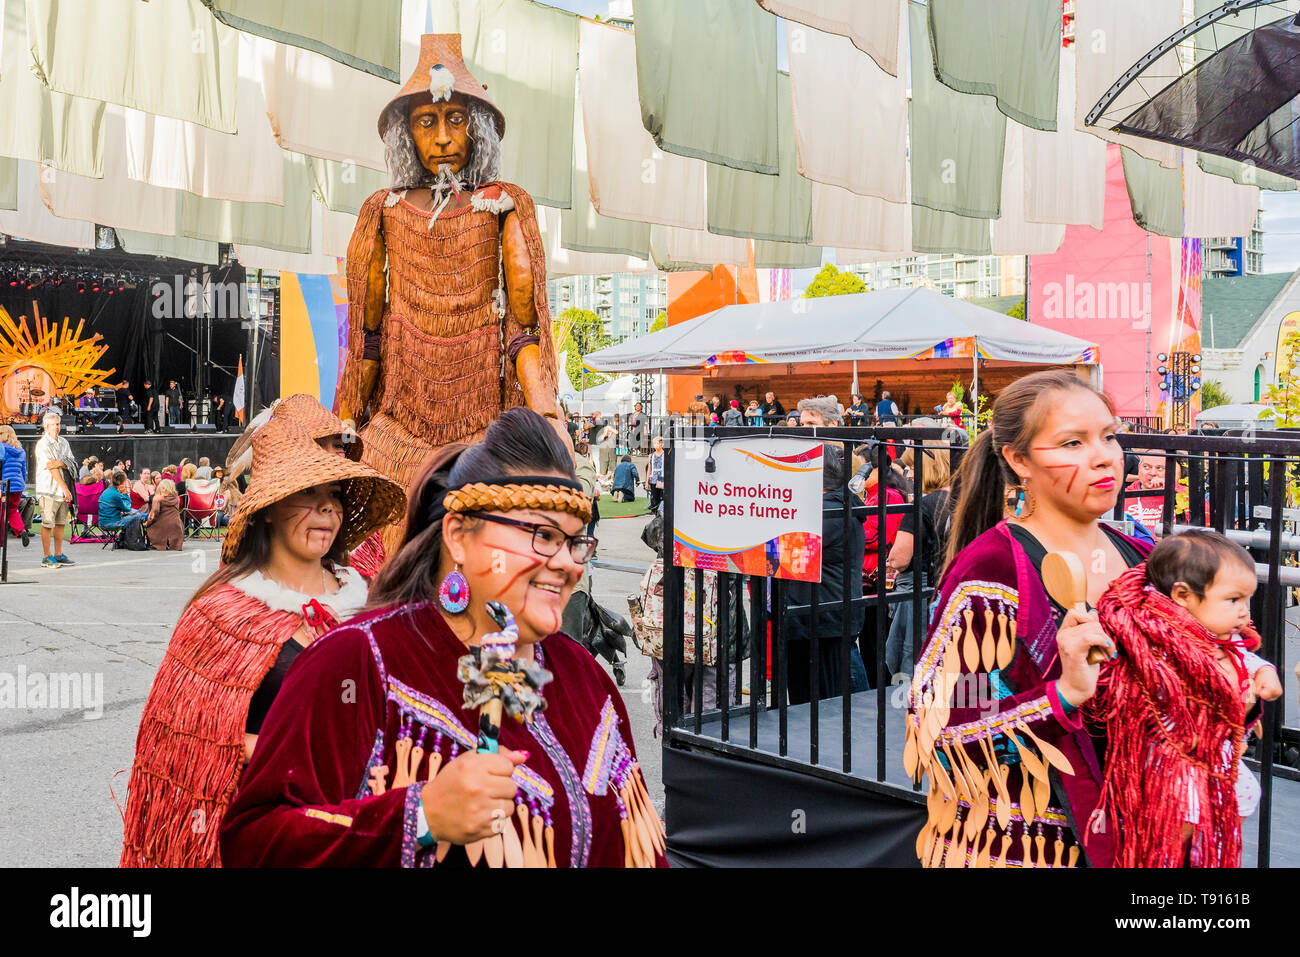 Mortal Coil's First Welcome Hych'ka, Giant Coast Salish puppet appears at the Drum is Calling Festival, Canada 150+ event, Larwill Park, Vancouver, Br - Stock Image